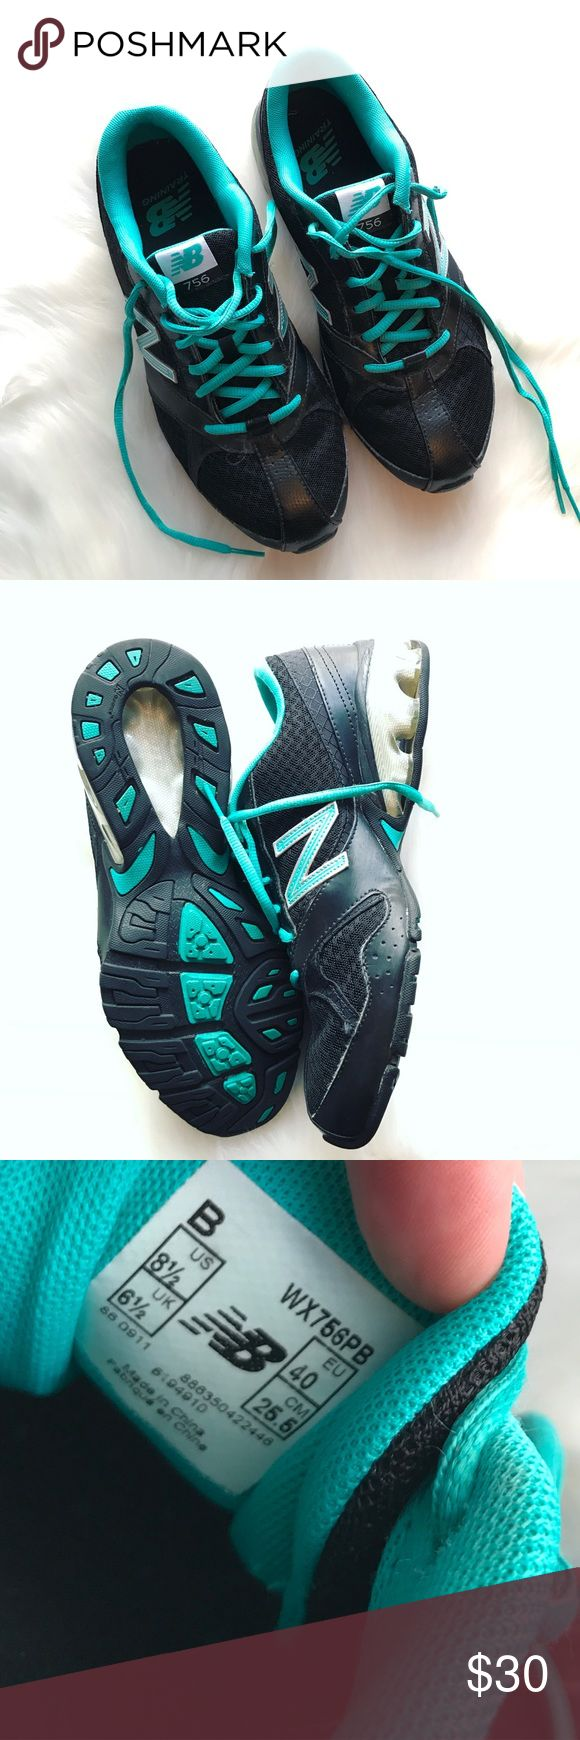 New Balance Cross Training Shoes Great condition black and teal 756 athletic shoes by New Balance. Feel free to make an offer! 💙 New Balance Shoes Athletic Shoes